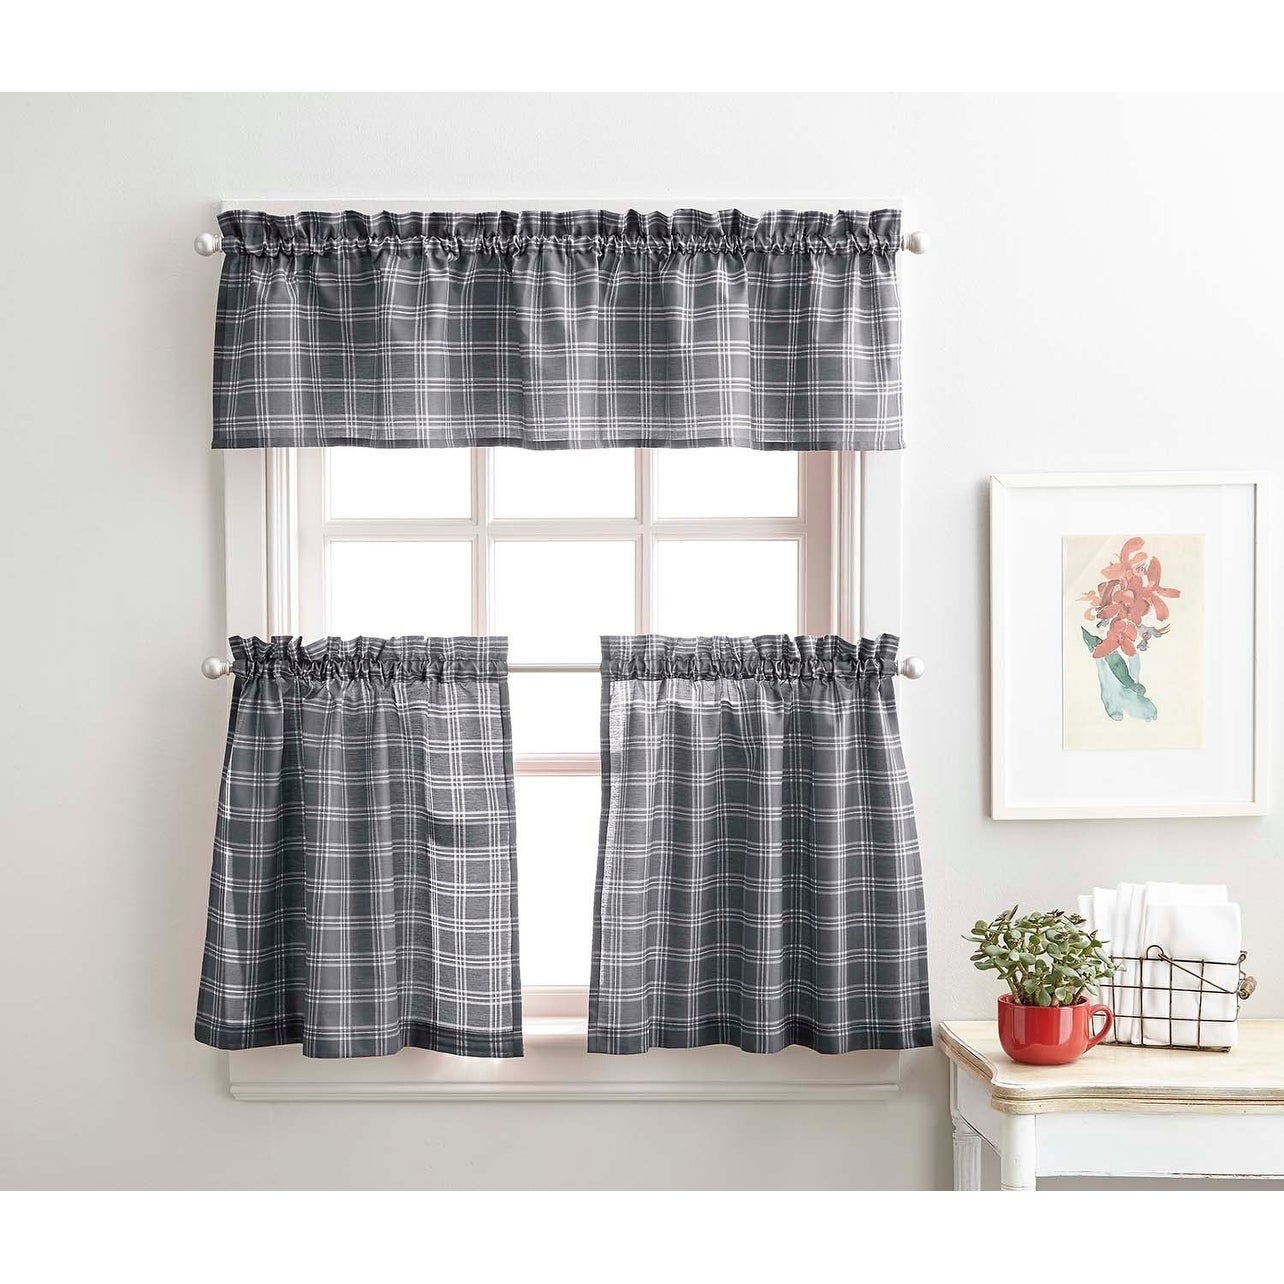 Details About Lodge Plaid 3 Piece Kitchen Curtain Tier And Valance Set – Within Abby Embroidered 5 Piece Curtain Tier And Swag Sets (Image 8 of 20)